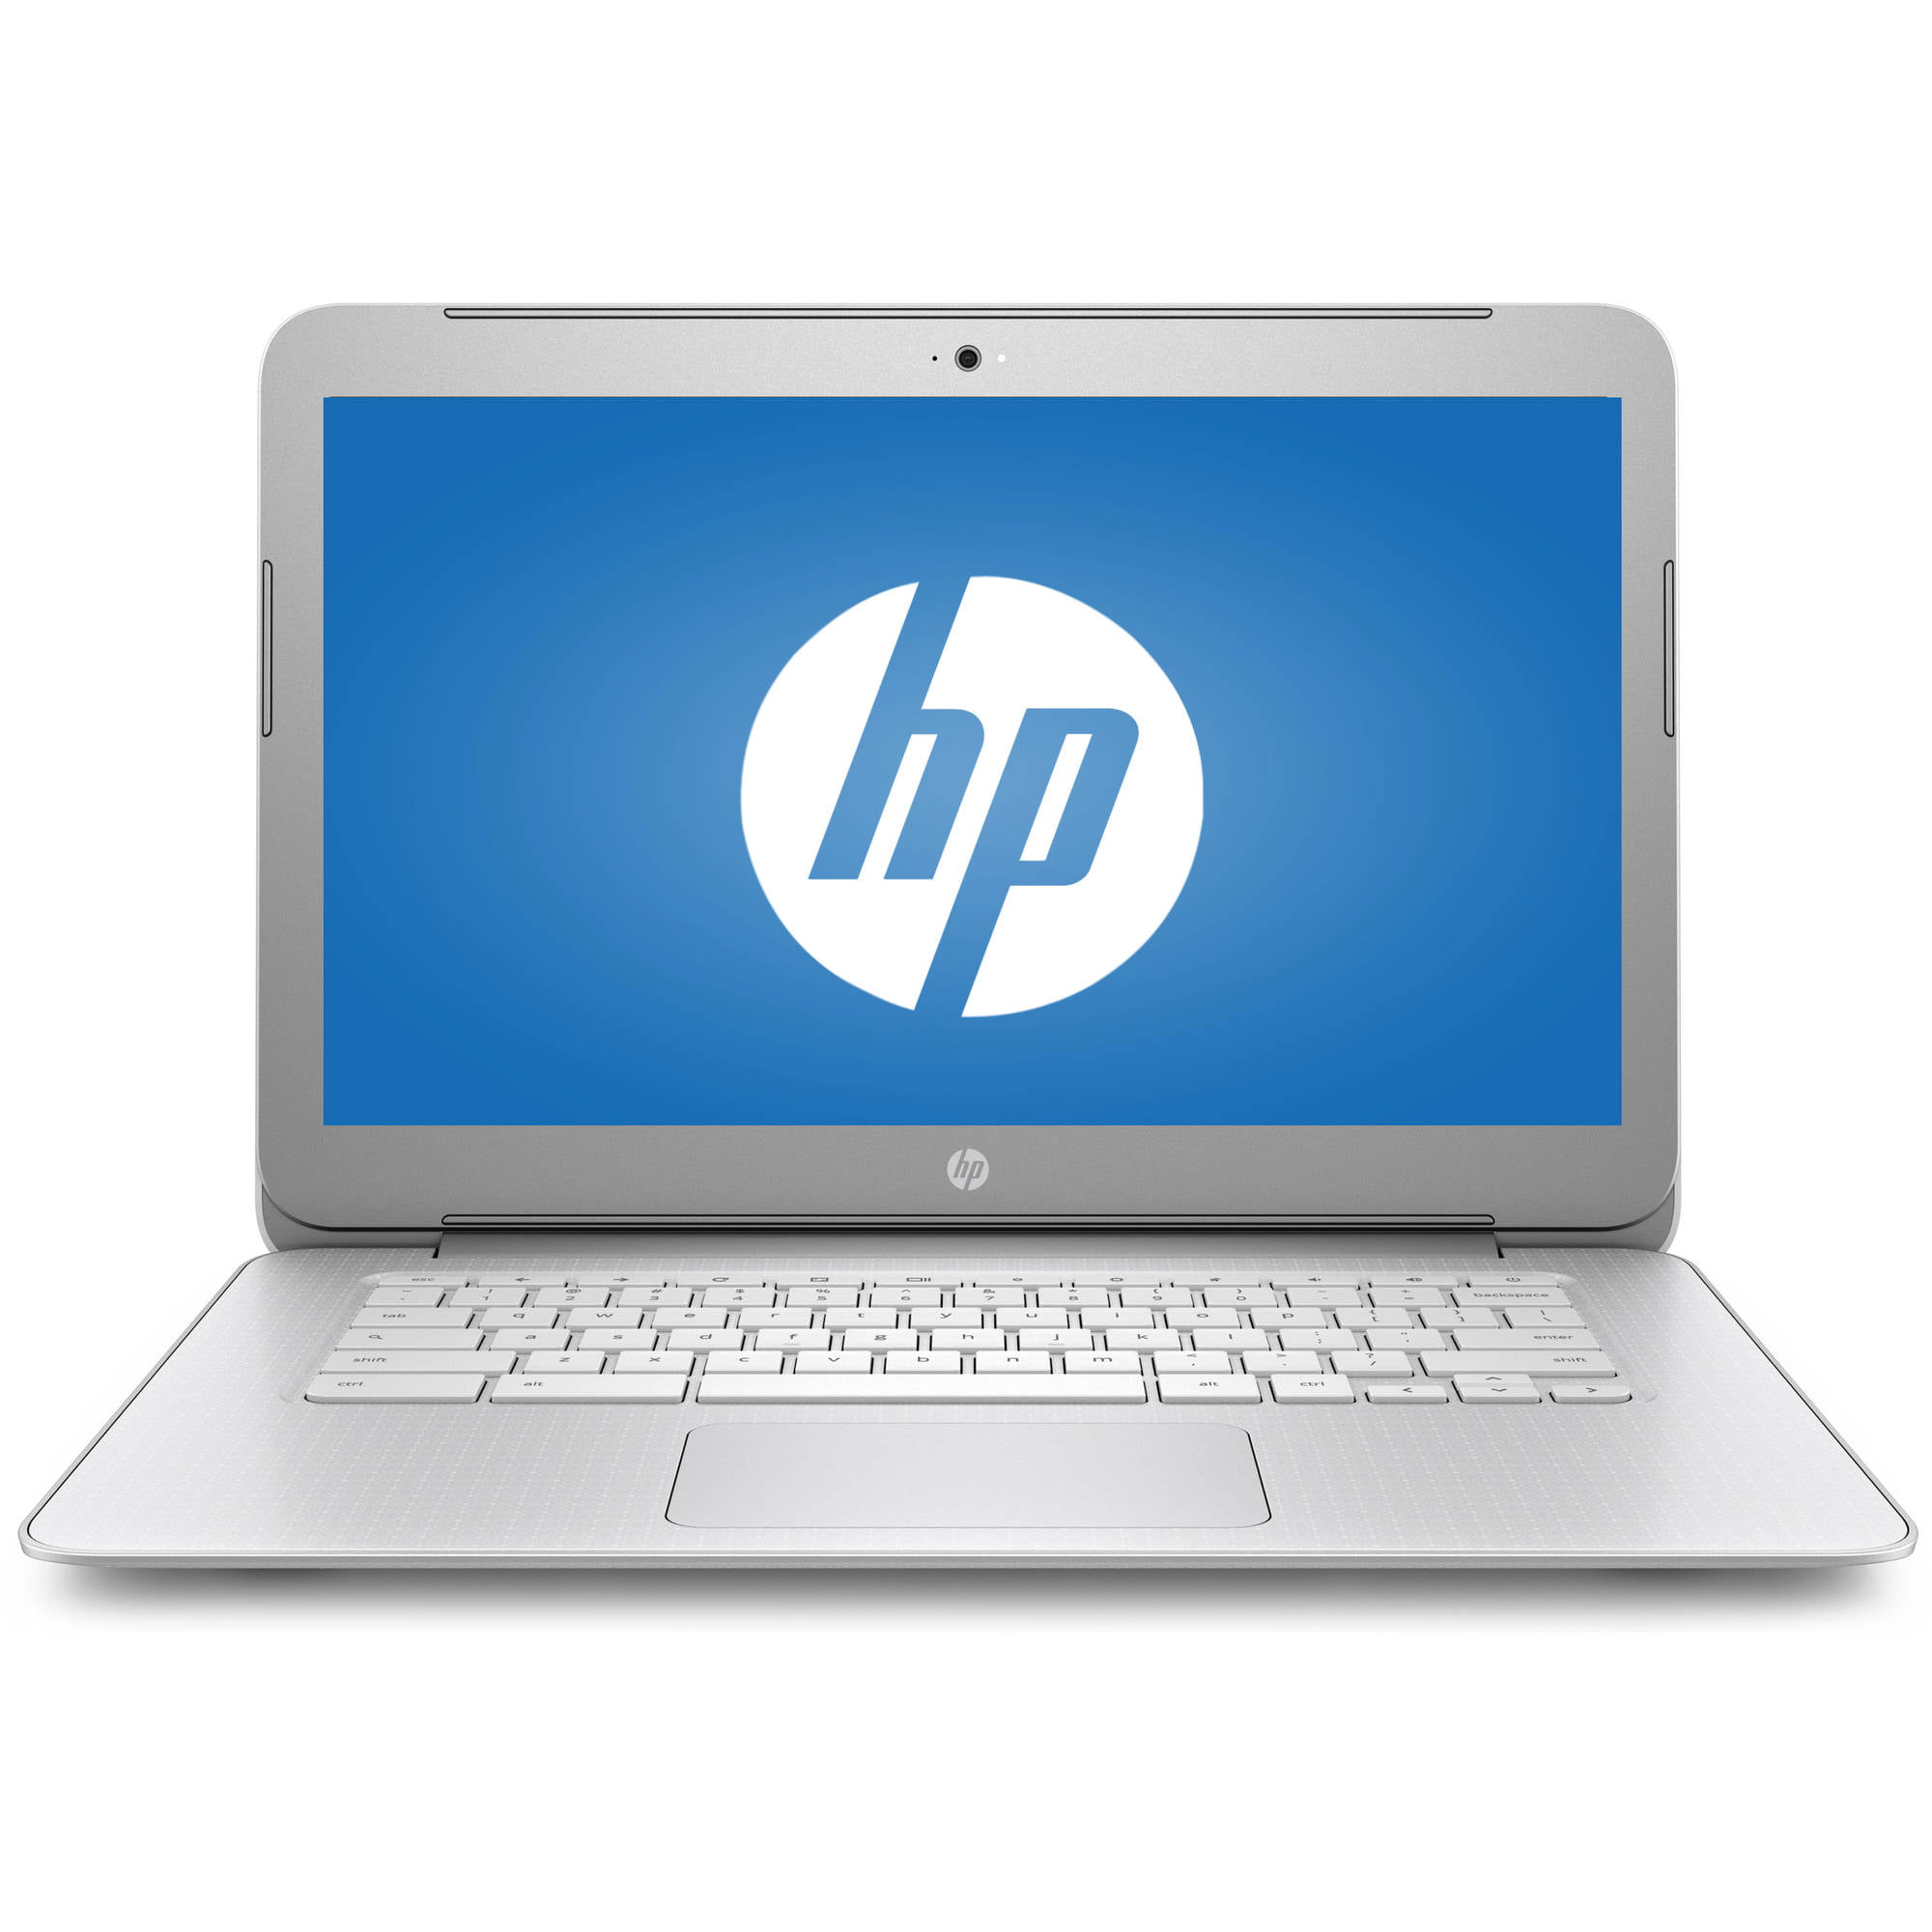 "HP 14-ak040wm 14"" Chromebook, Chrome, Full HD IPS Display, Intel Celeron N2940 Processor, 4GB RAM, 16GB... by HP"